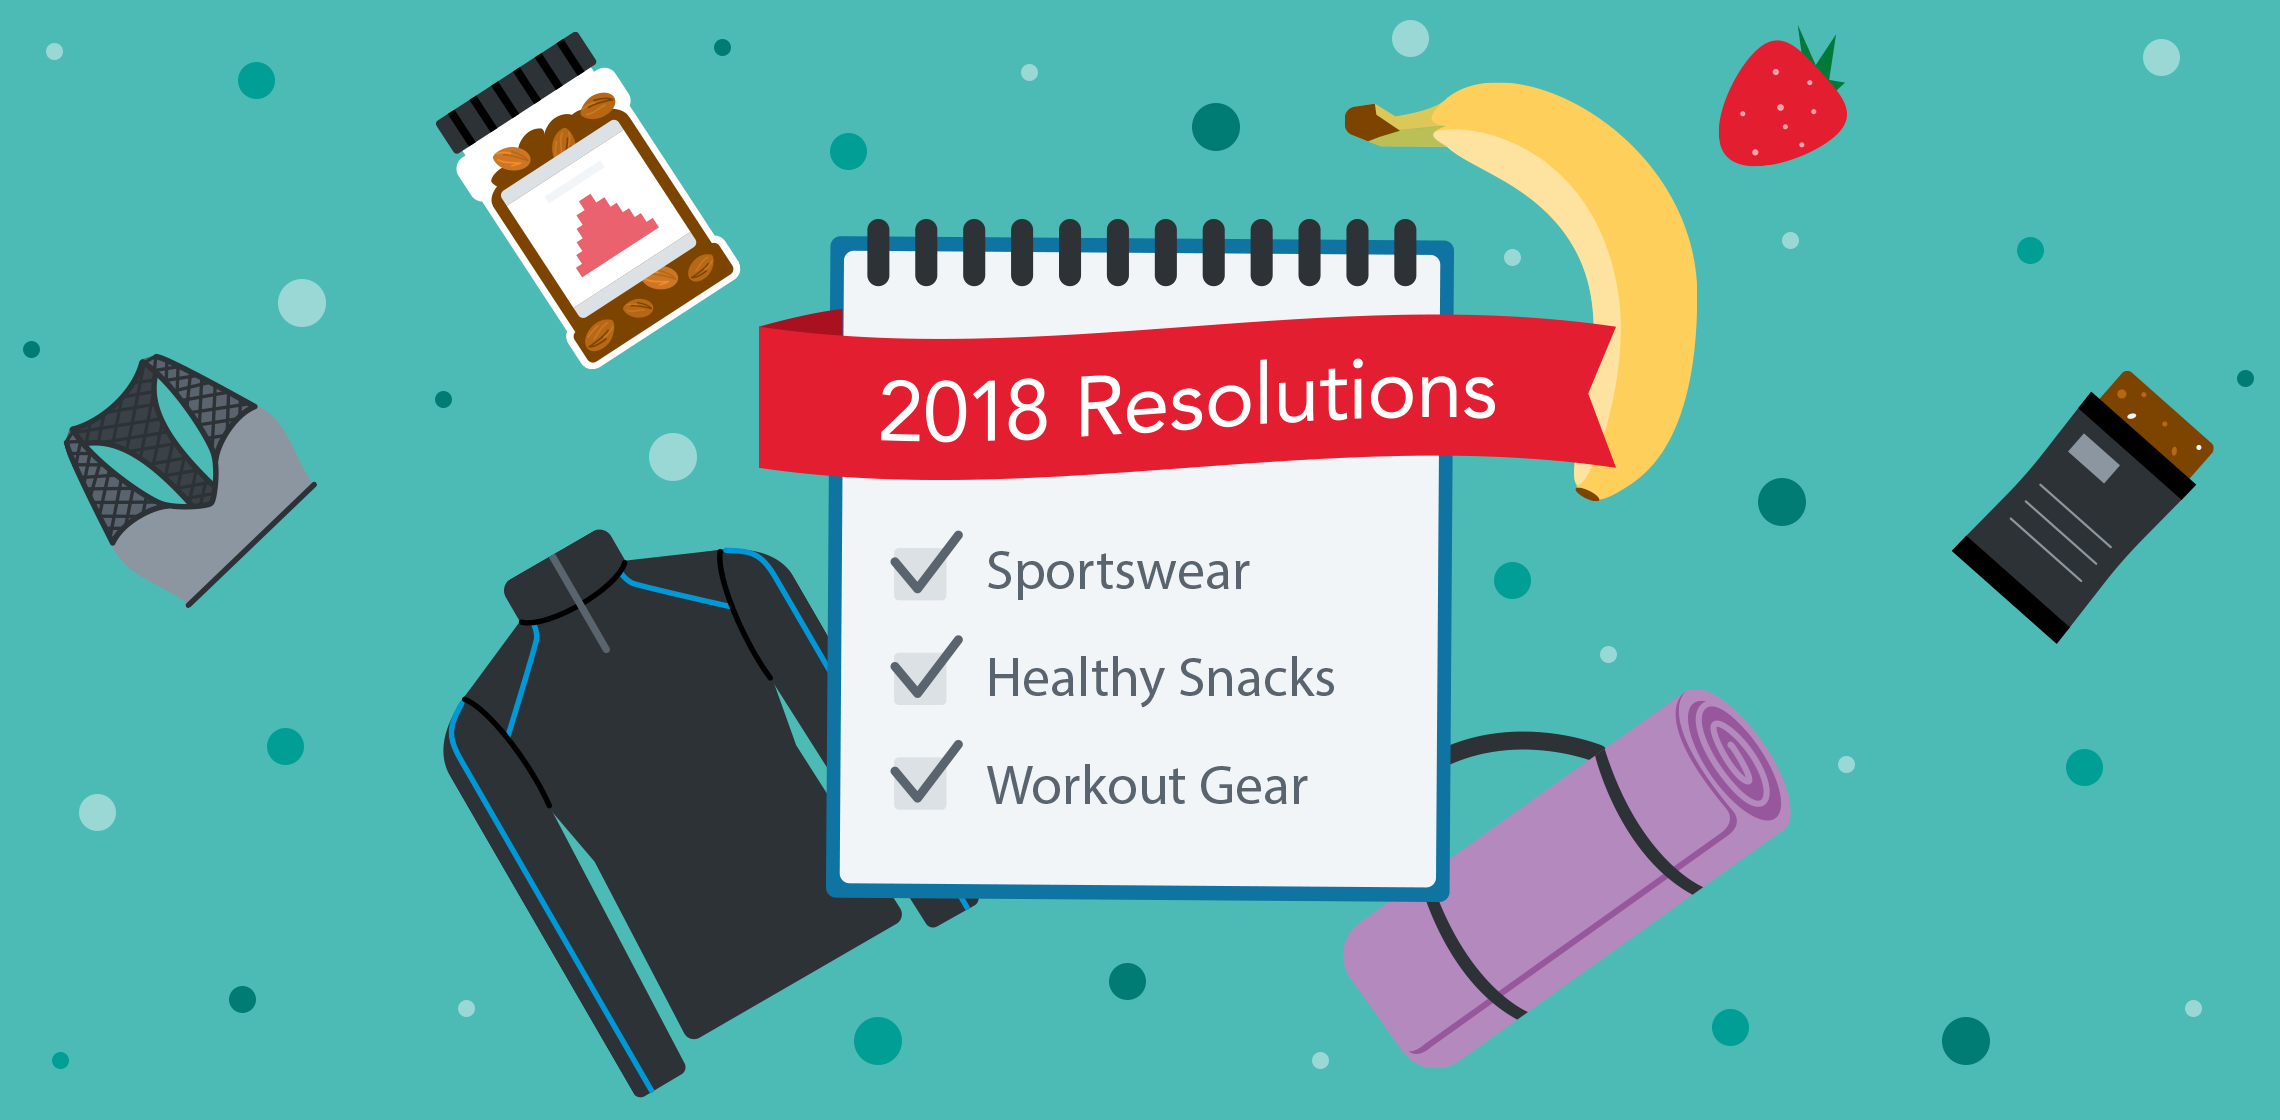 Get fit while earning kicks towards free gift cards with Shopkick. Check out our guide to achieving your fitness resolutions.